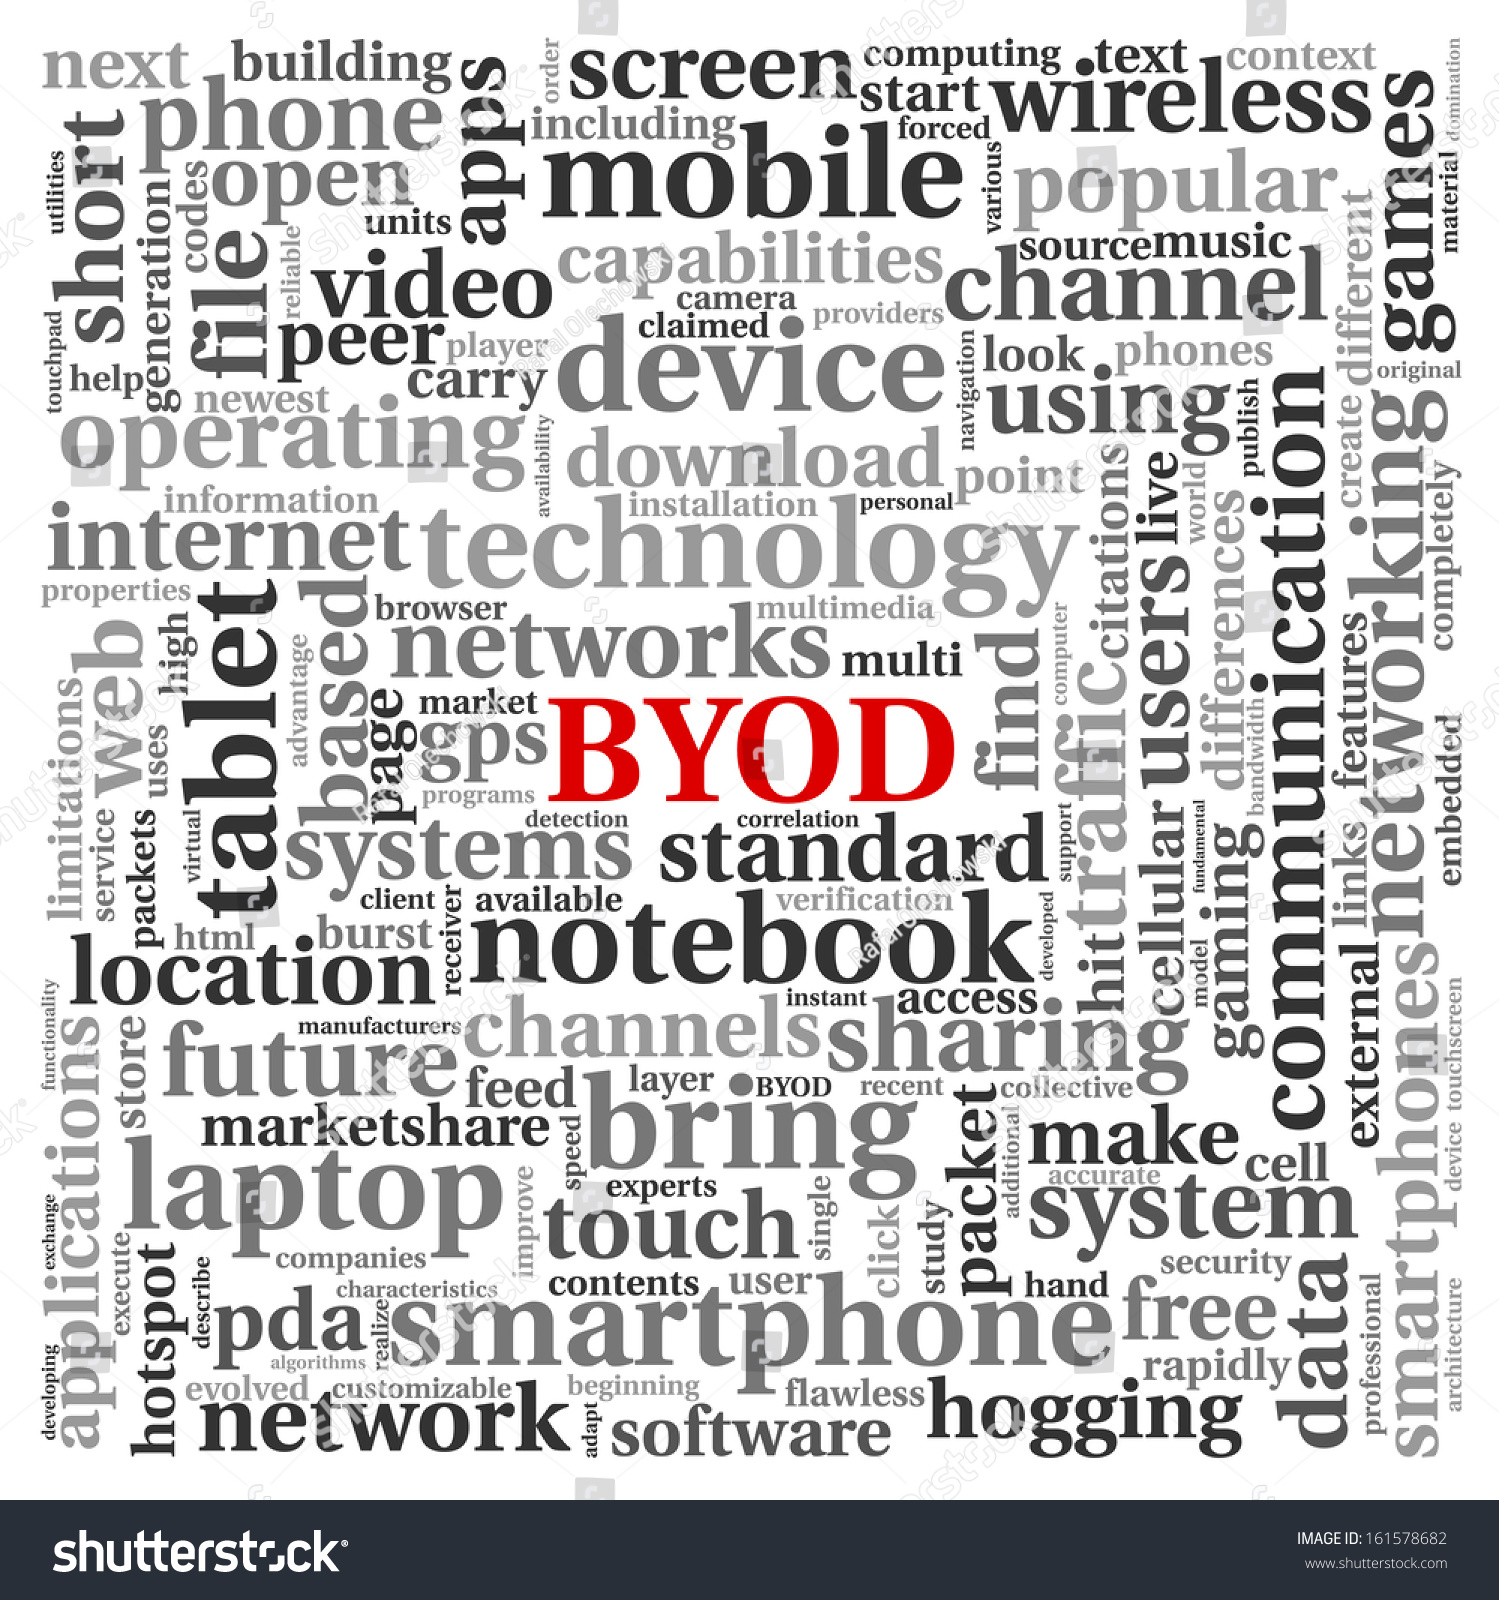 BYOD Bring Your Own Device Concept Stock Illustration